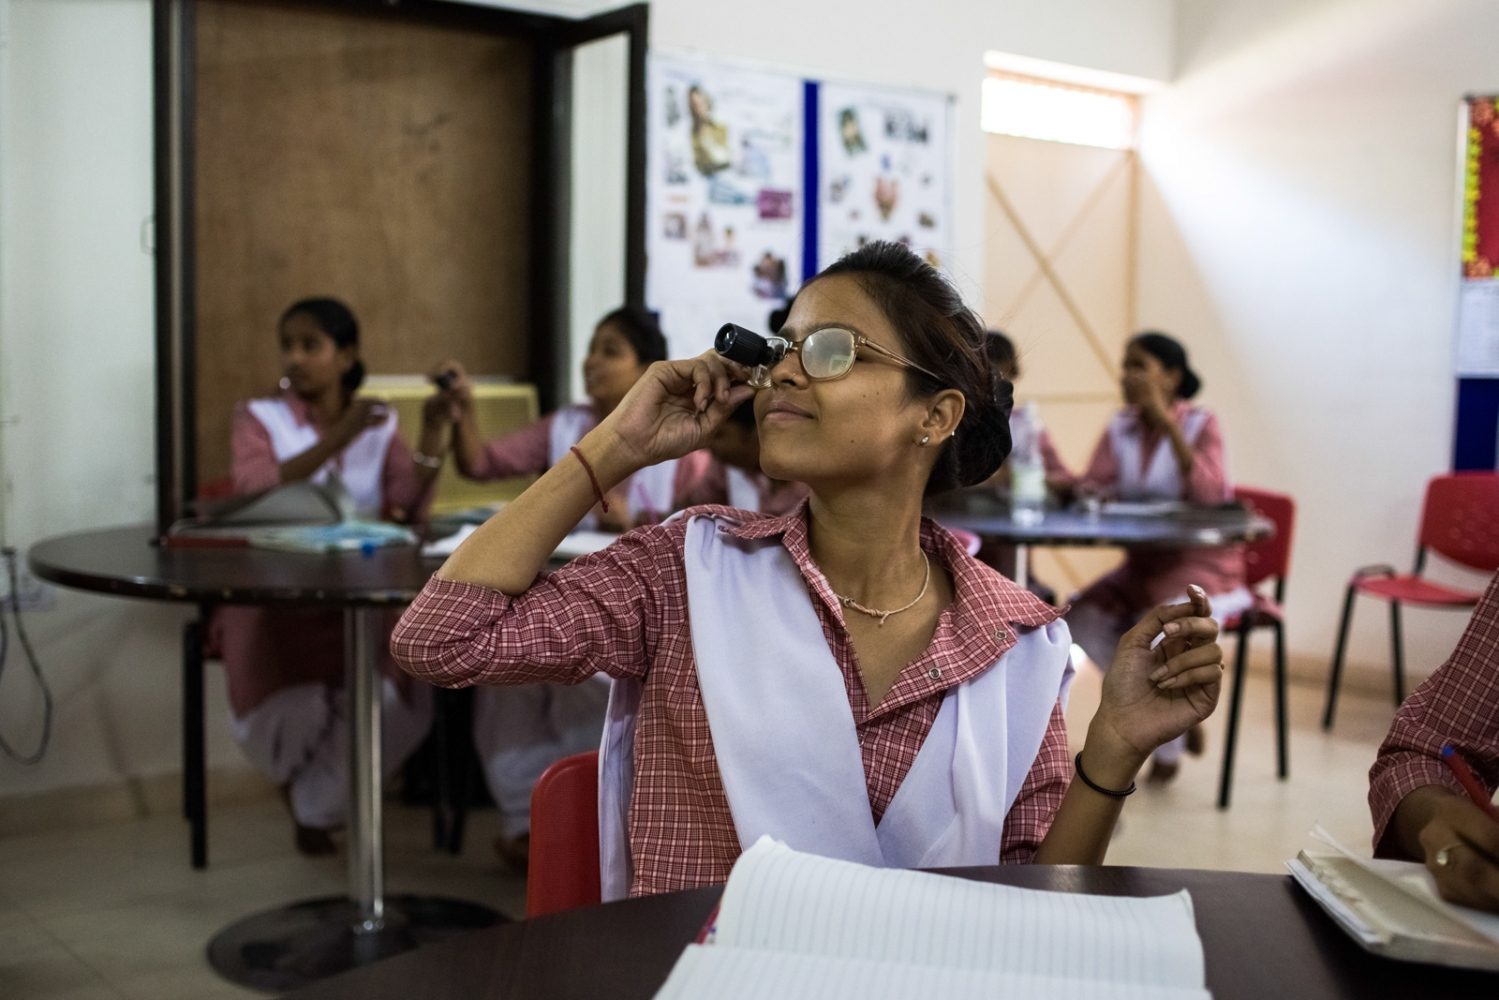 An Indian student uses a vision aid and glasses to simulate low vision as she takes part in a lesson during the Dr Shroff Charity Eye Hospital Certified Ophthalmic Personnel (COP) training programme in New Delhi on September 30, 3014.